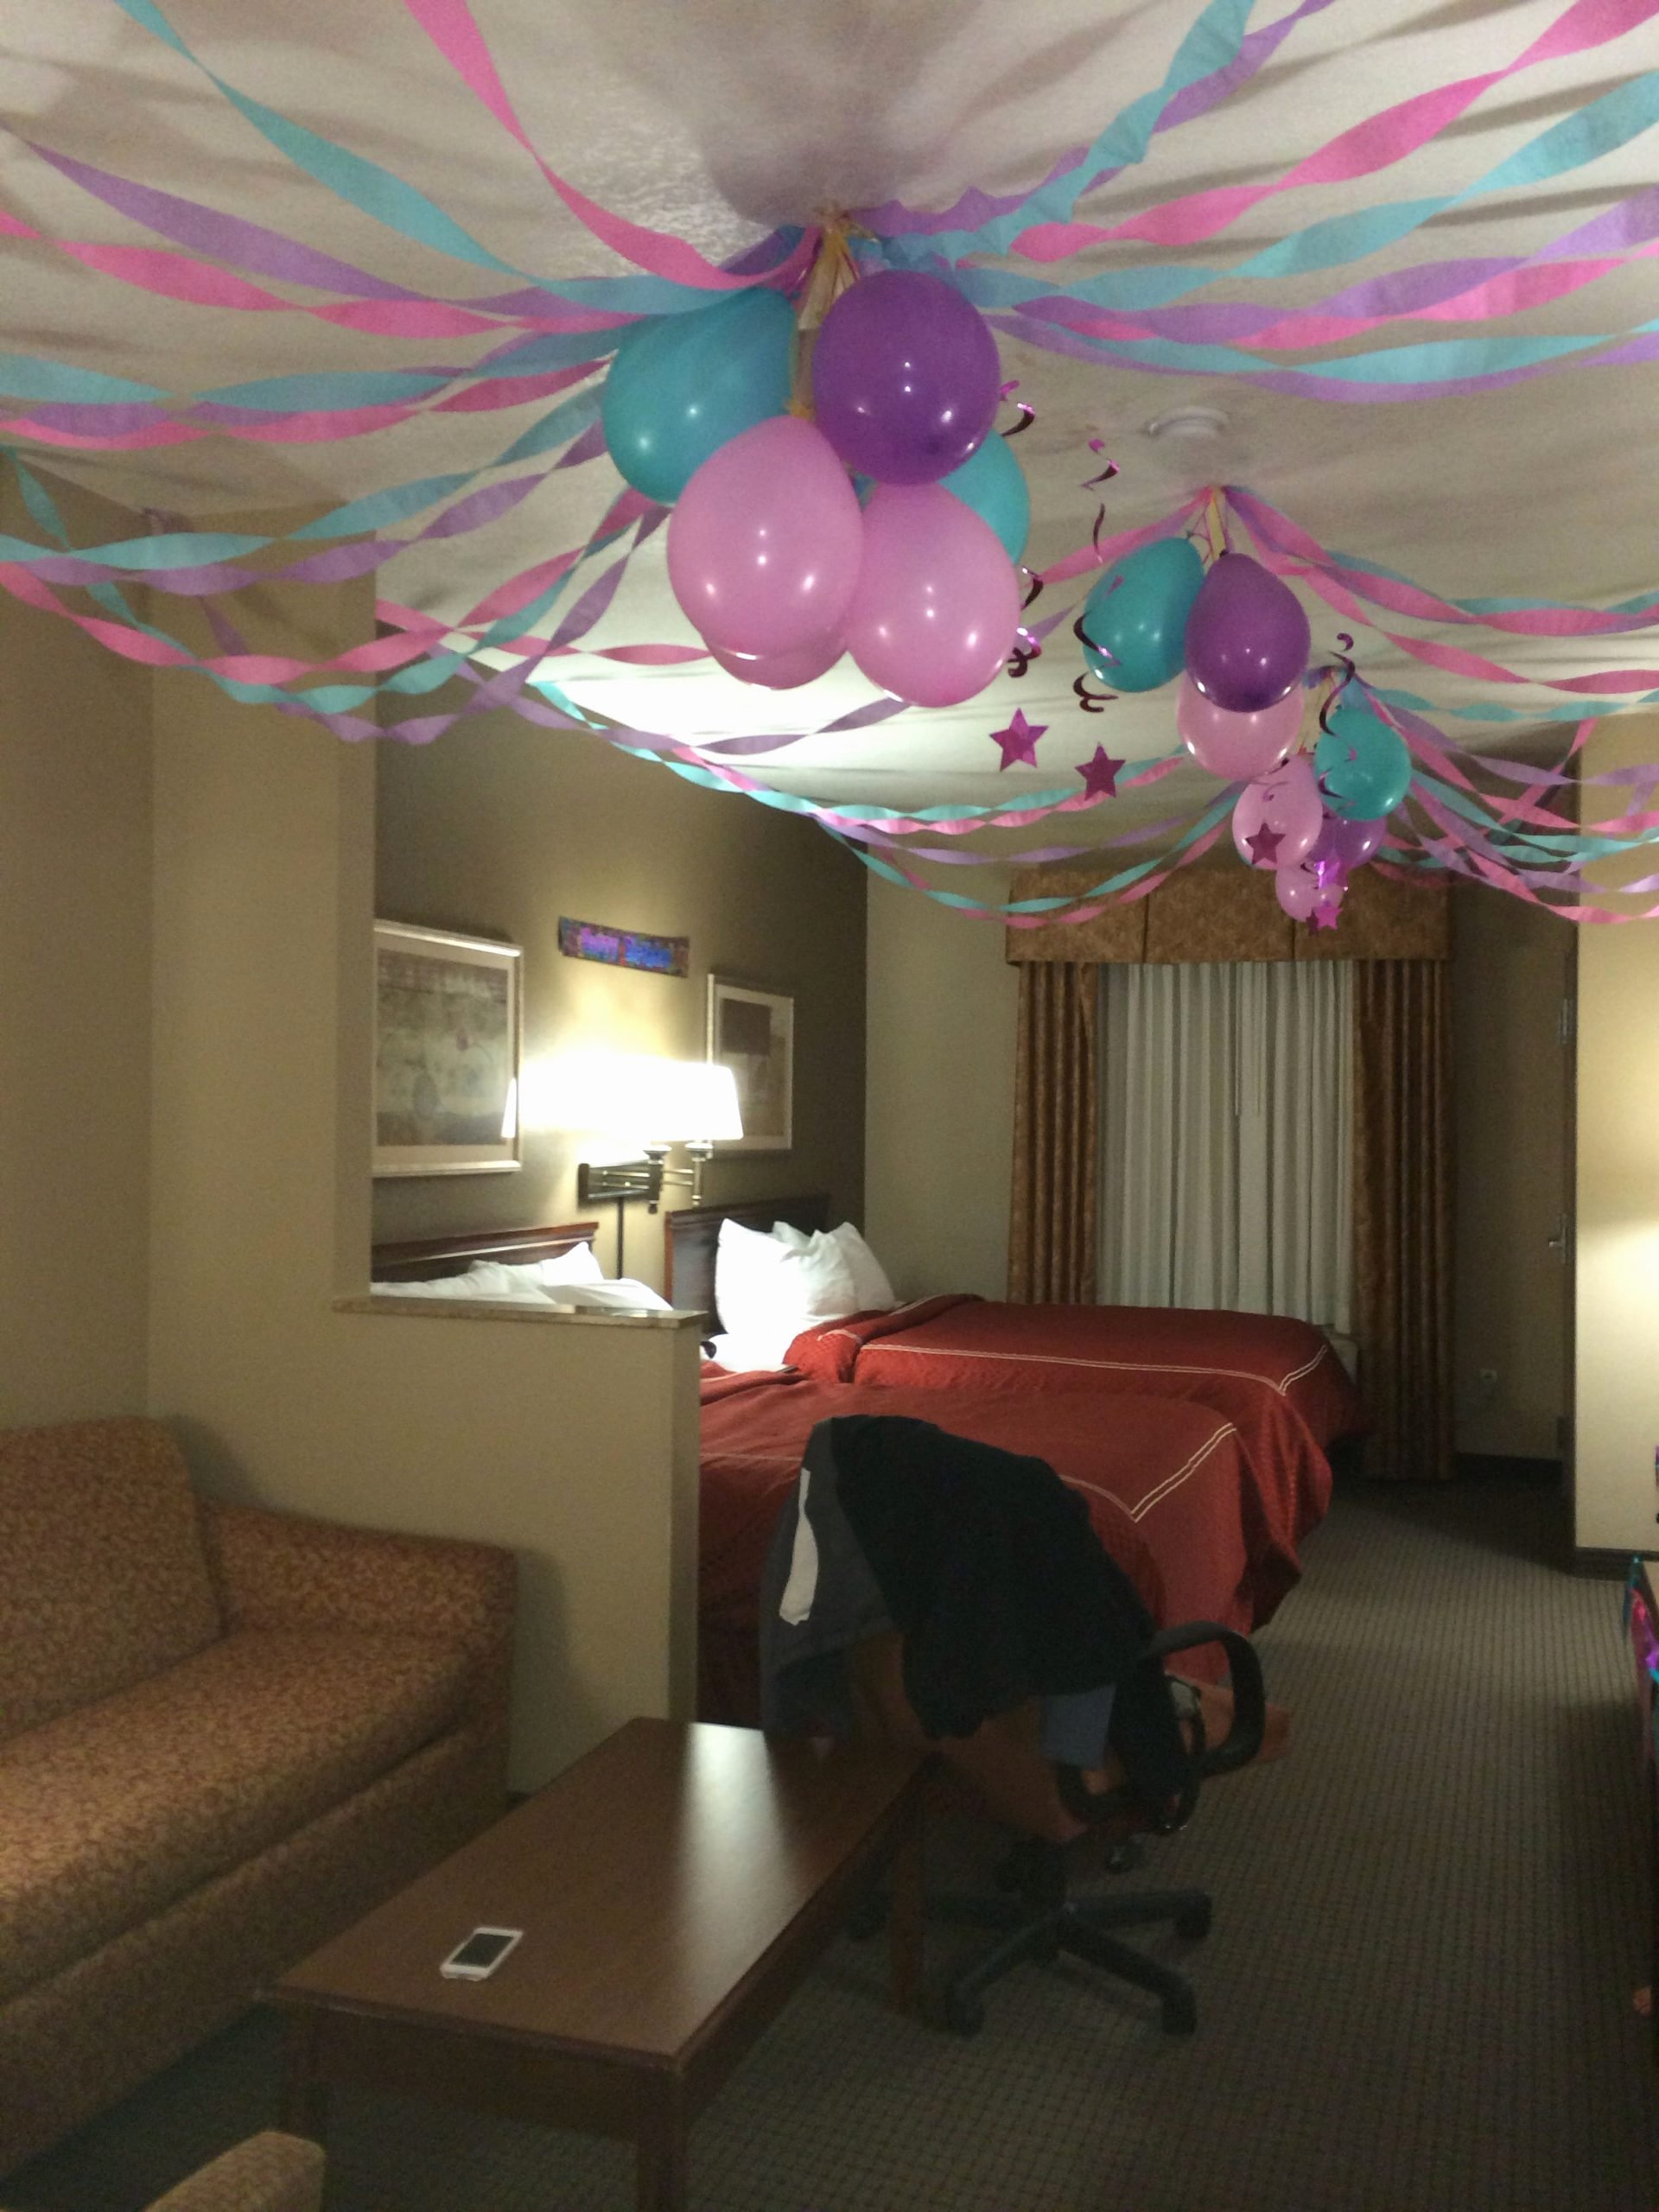 Birthday Decoration Ideas In Room Unique Birthday Party In A Hotel Room Invertedballons Streamers